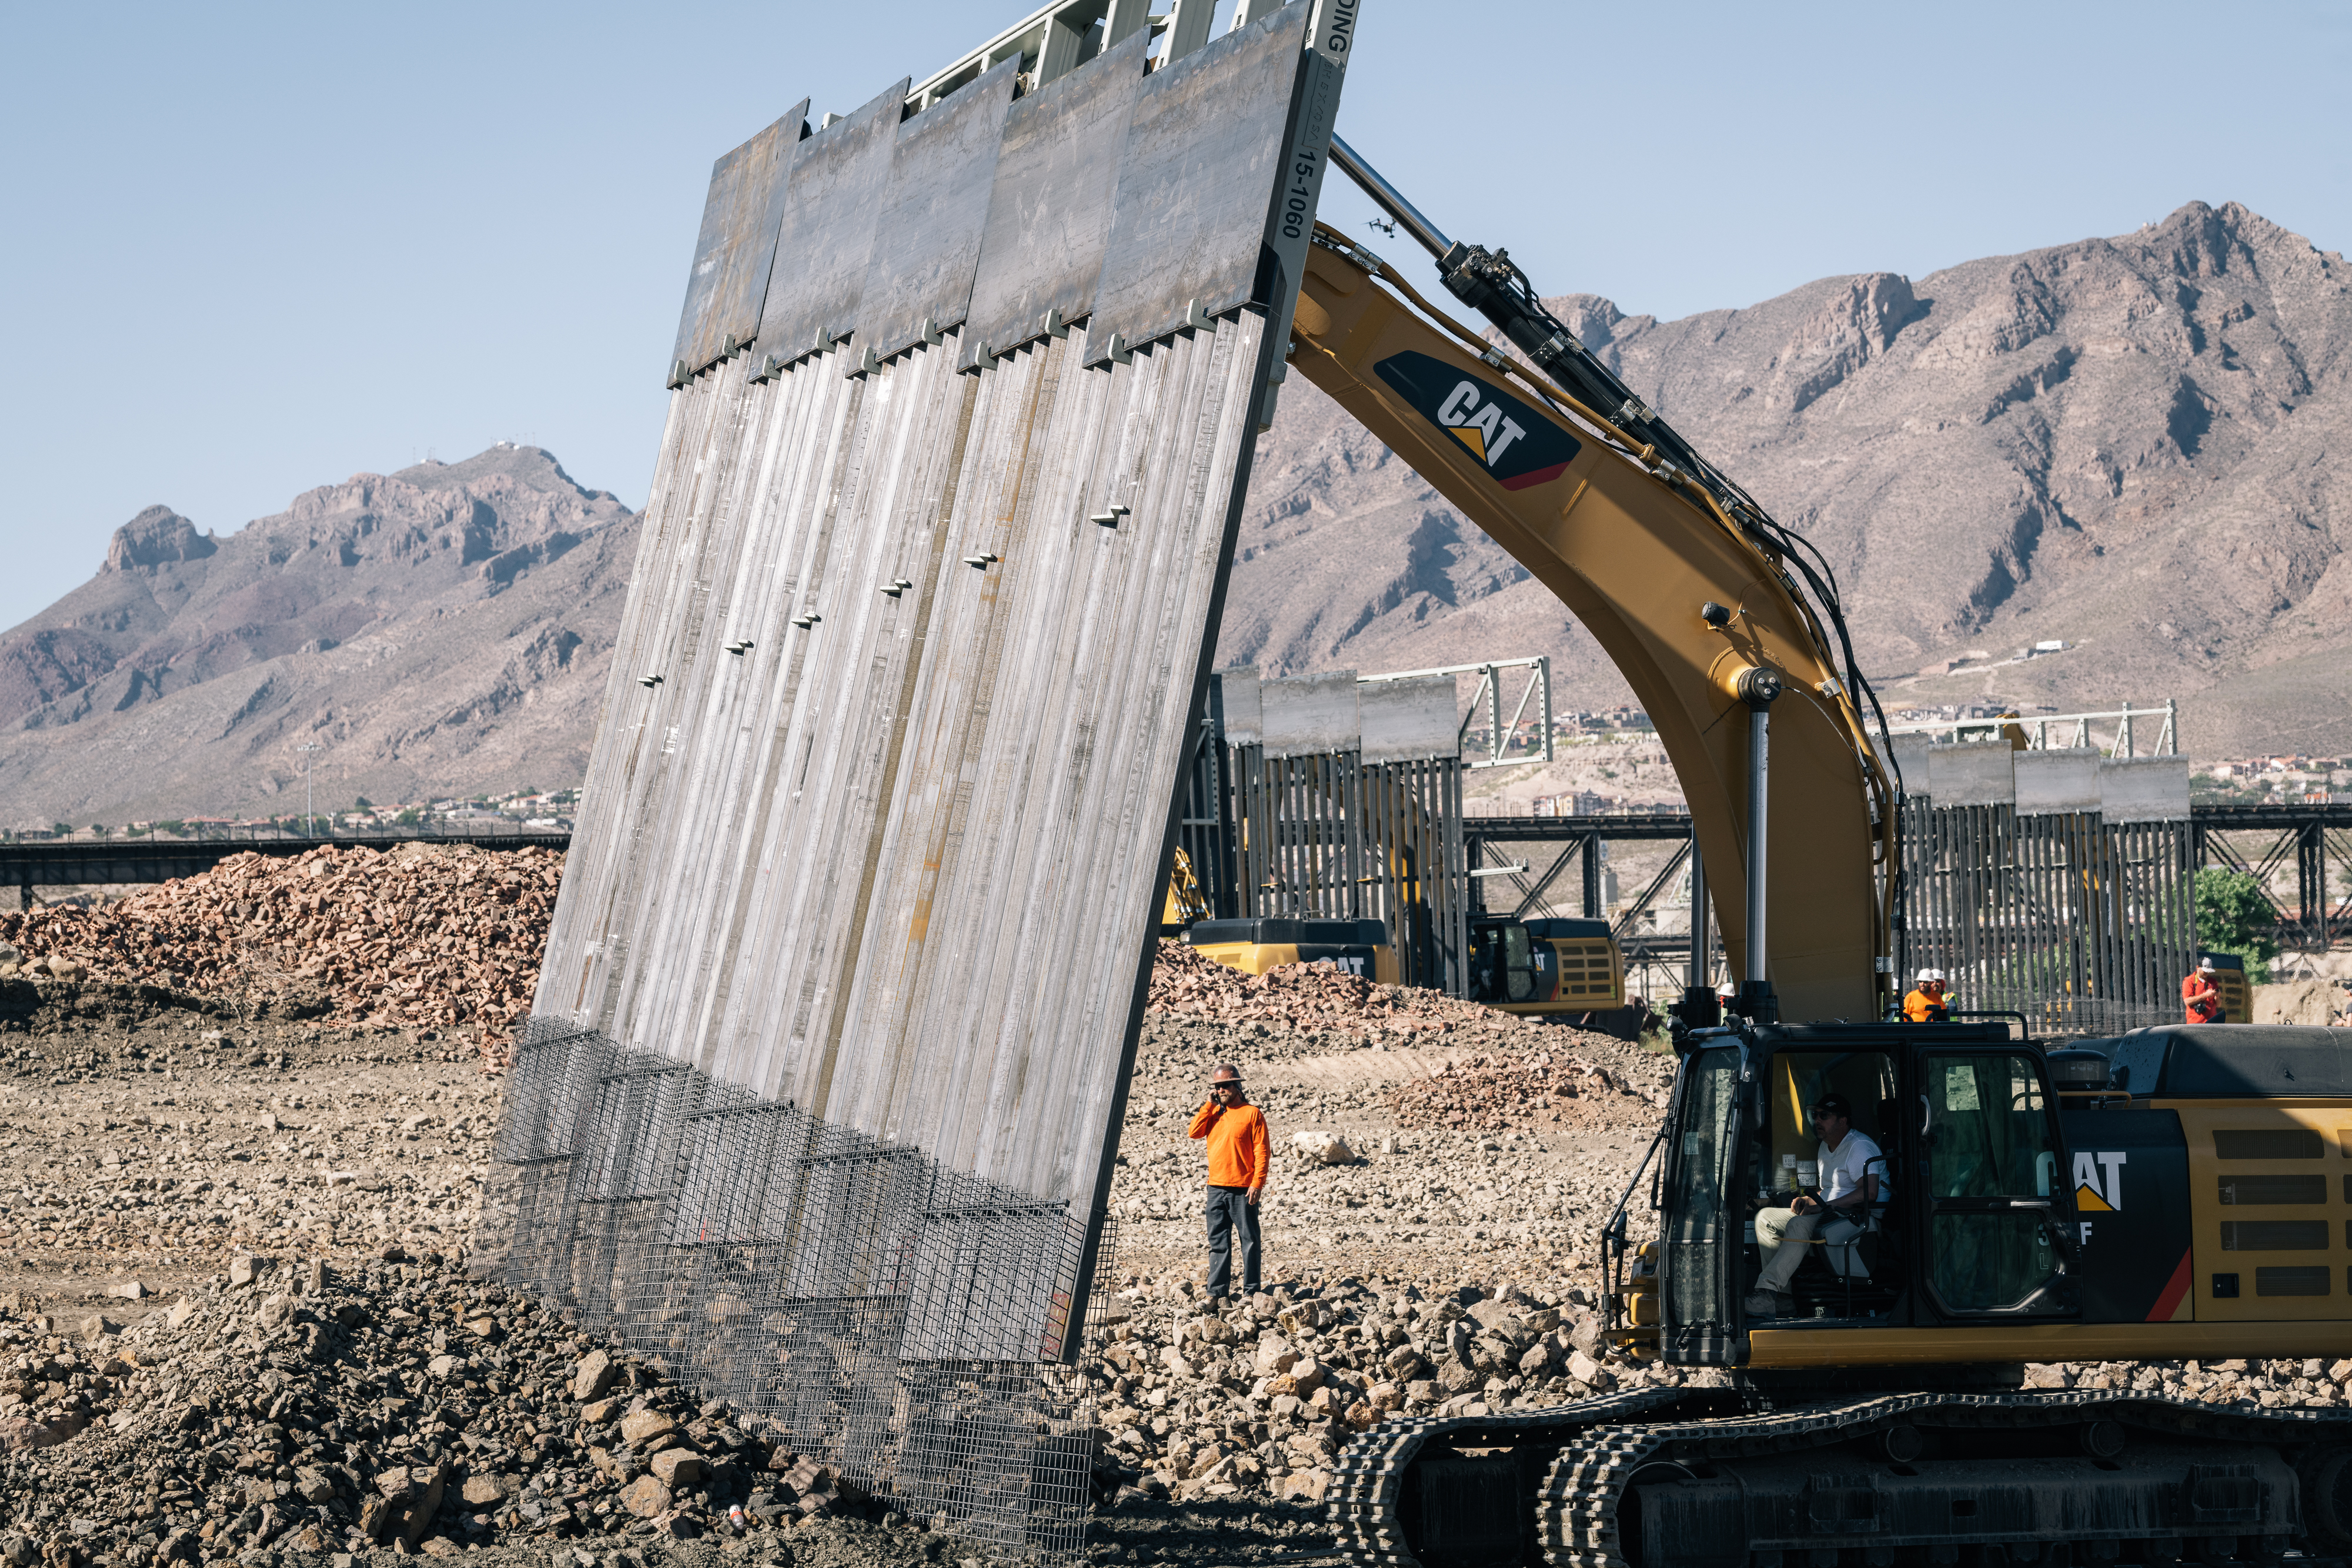 Fisher Industries workers drop the first piece  of wall into place on Friday, May 24, 2019 in Sunland Park, New Mexico, on land owned by American Eagle Brick Co, near International Boundary Monument No. 1 where New Mexico, Texas and Mexico come together.